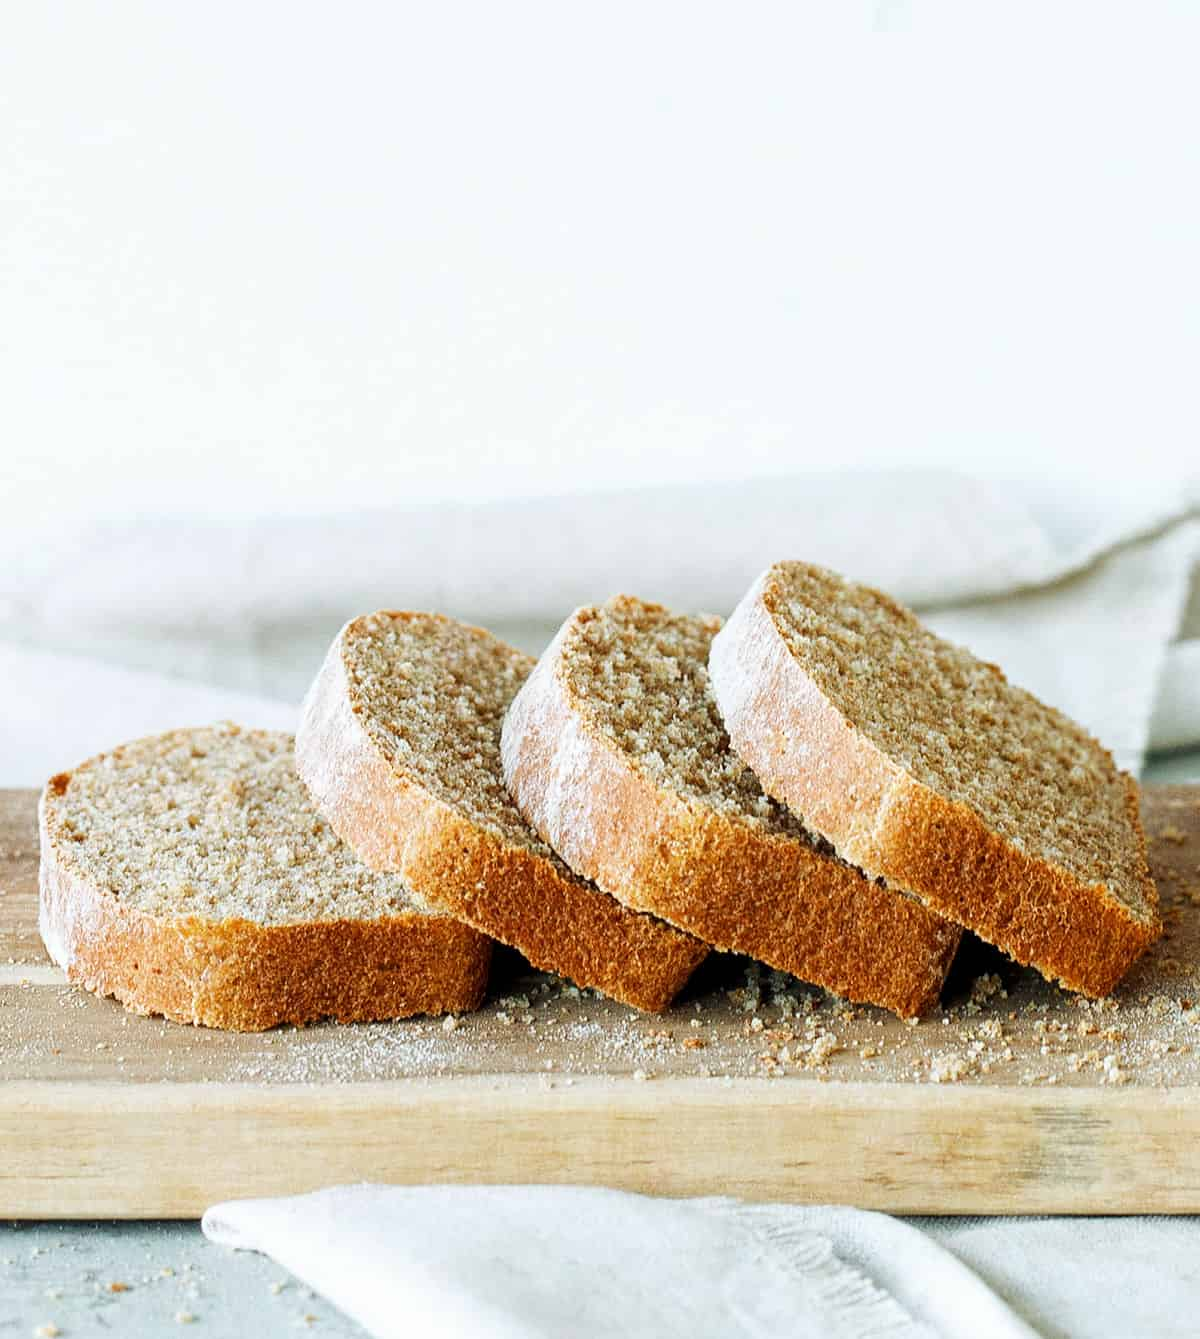 Four slices of whole wheat sandwich bread leaning onto each other on a light wooden board